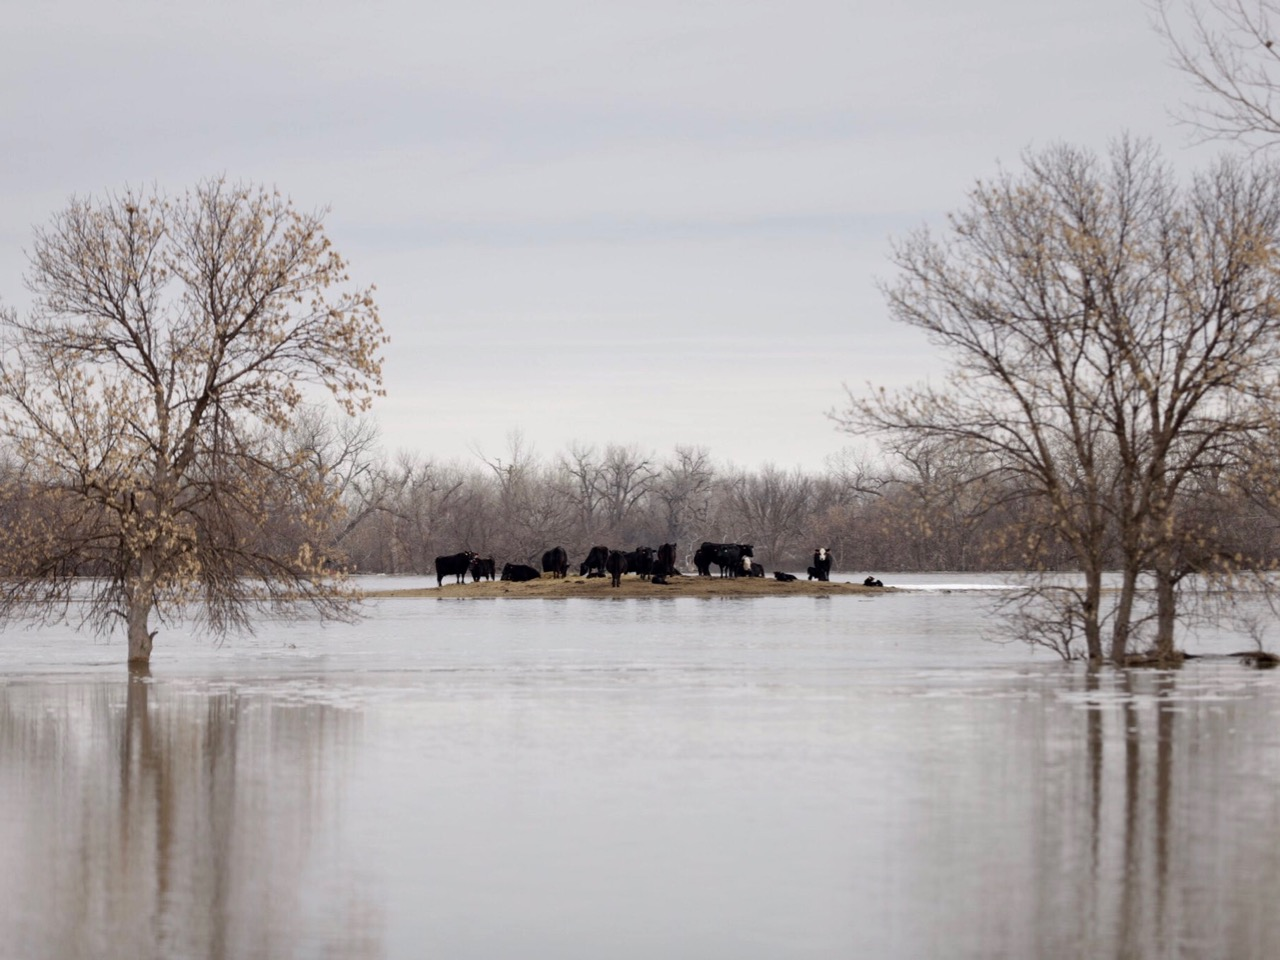 Cheyenne River Sioux Tribe declares emergency amid unprecedented flooding